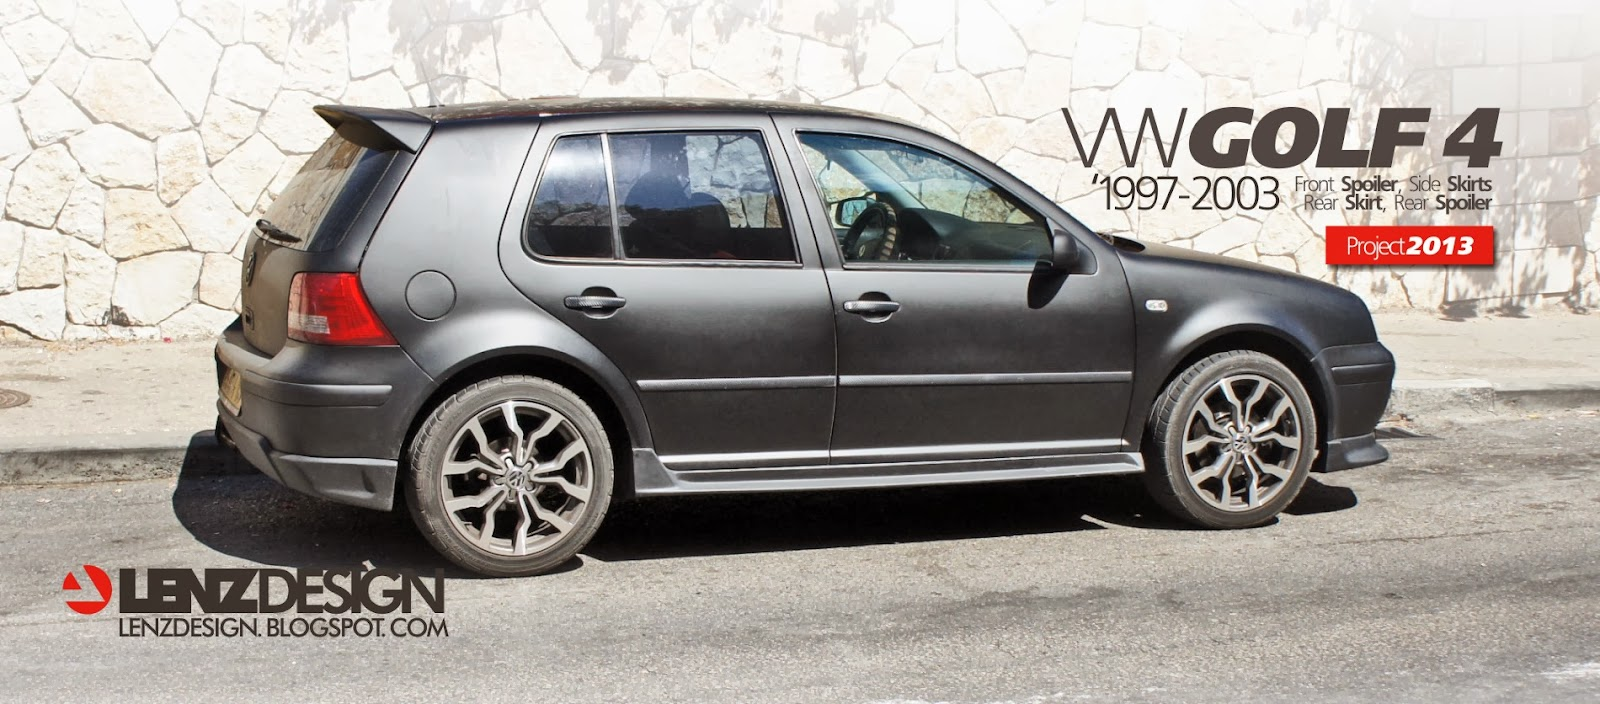 vw golf 4 tuning lenzdesign